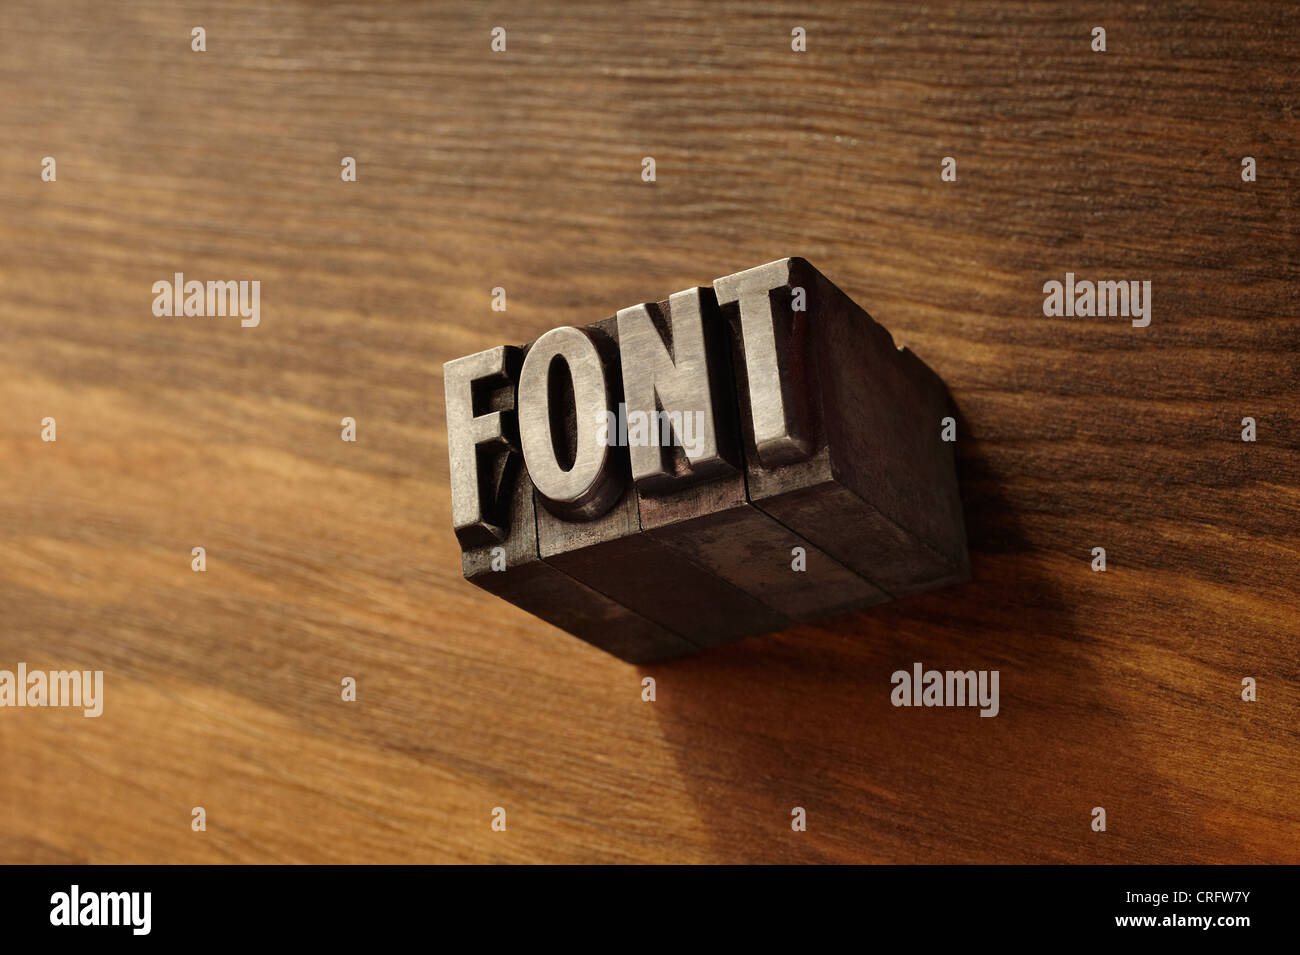 Lead type spelling 'font' - Stock Image